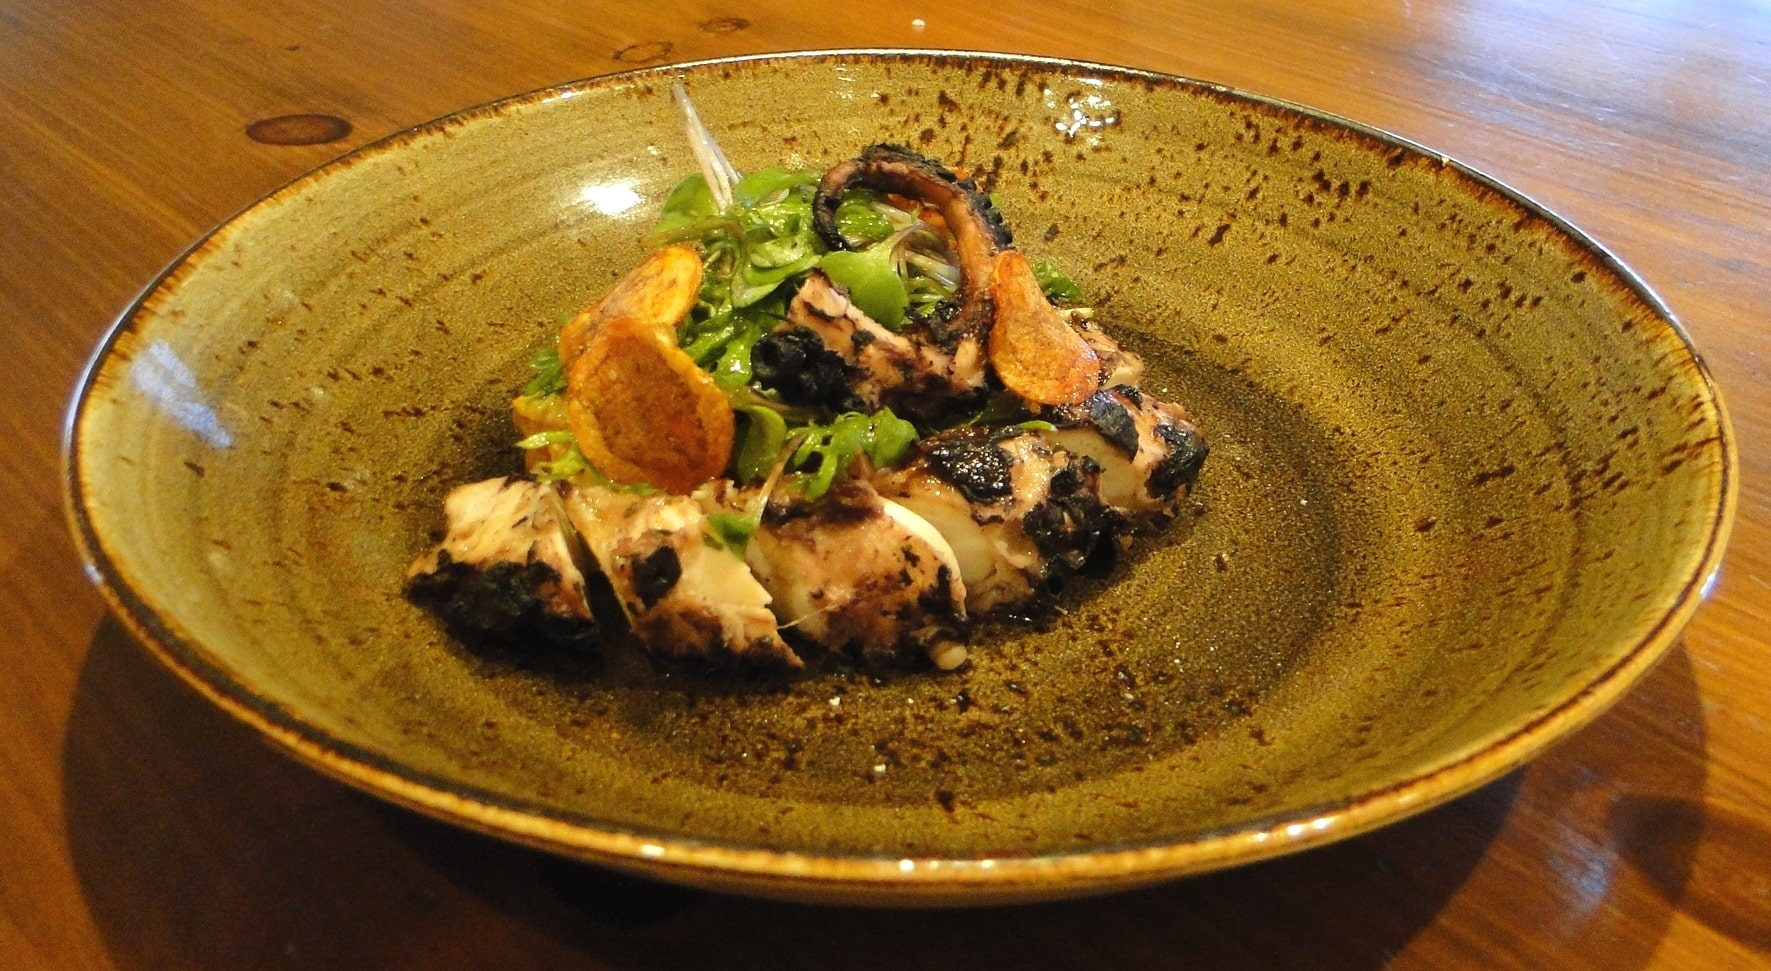 Primo Restaurant in Orlando Serves Up True Farm to Table Cuisine - Get Green Be Well